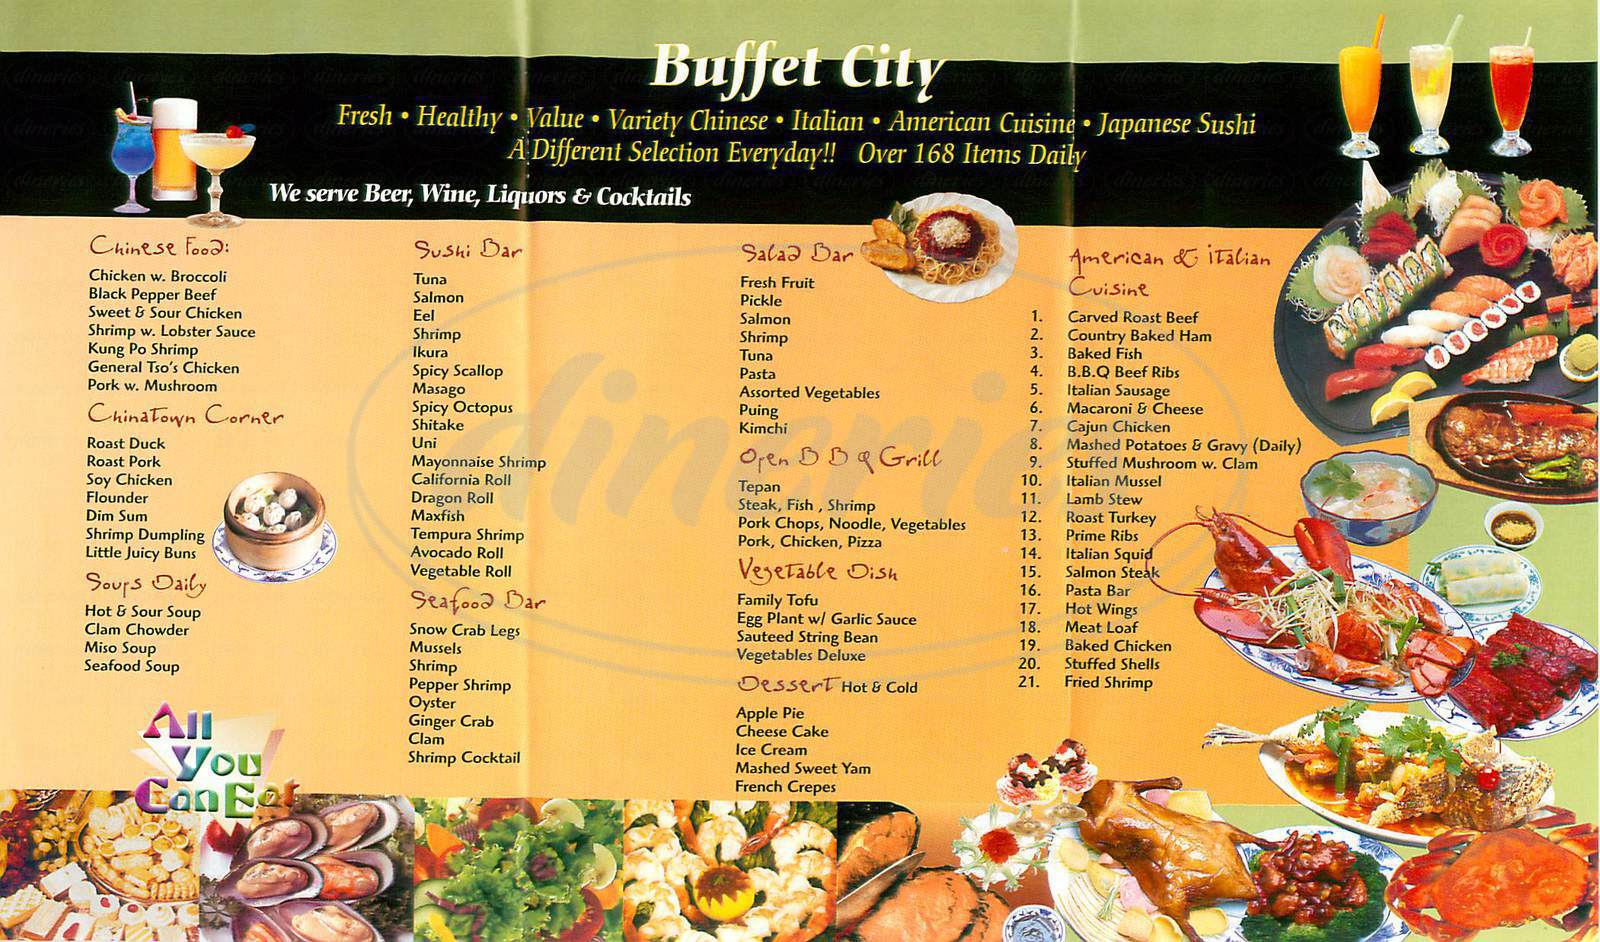 menu for Buffet City